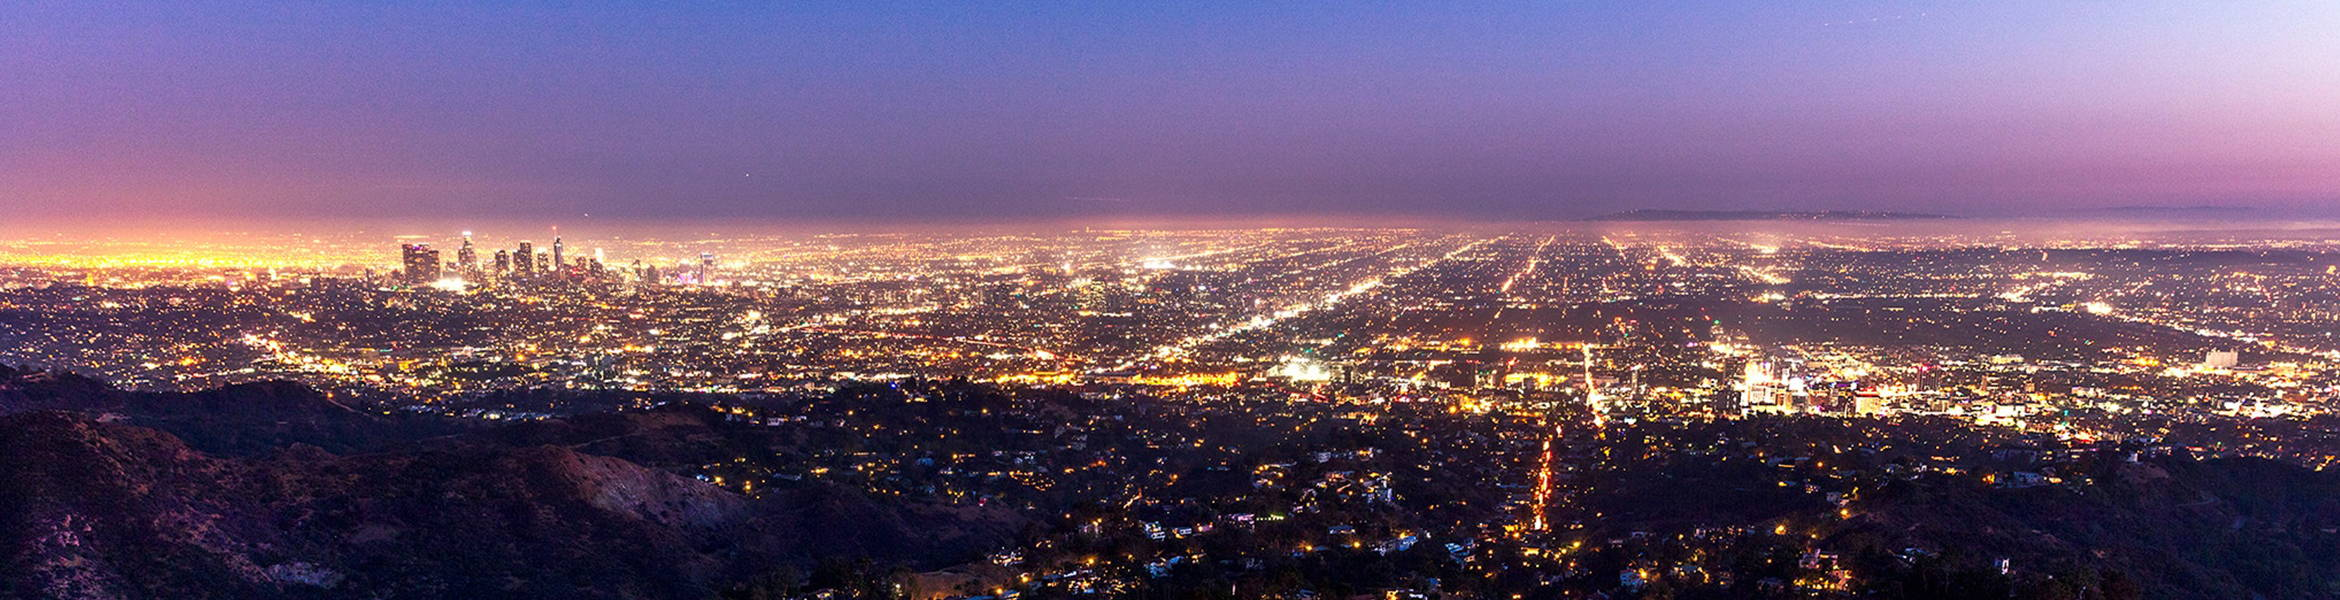 Night view of Los Angeles